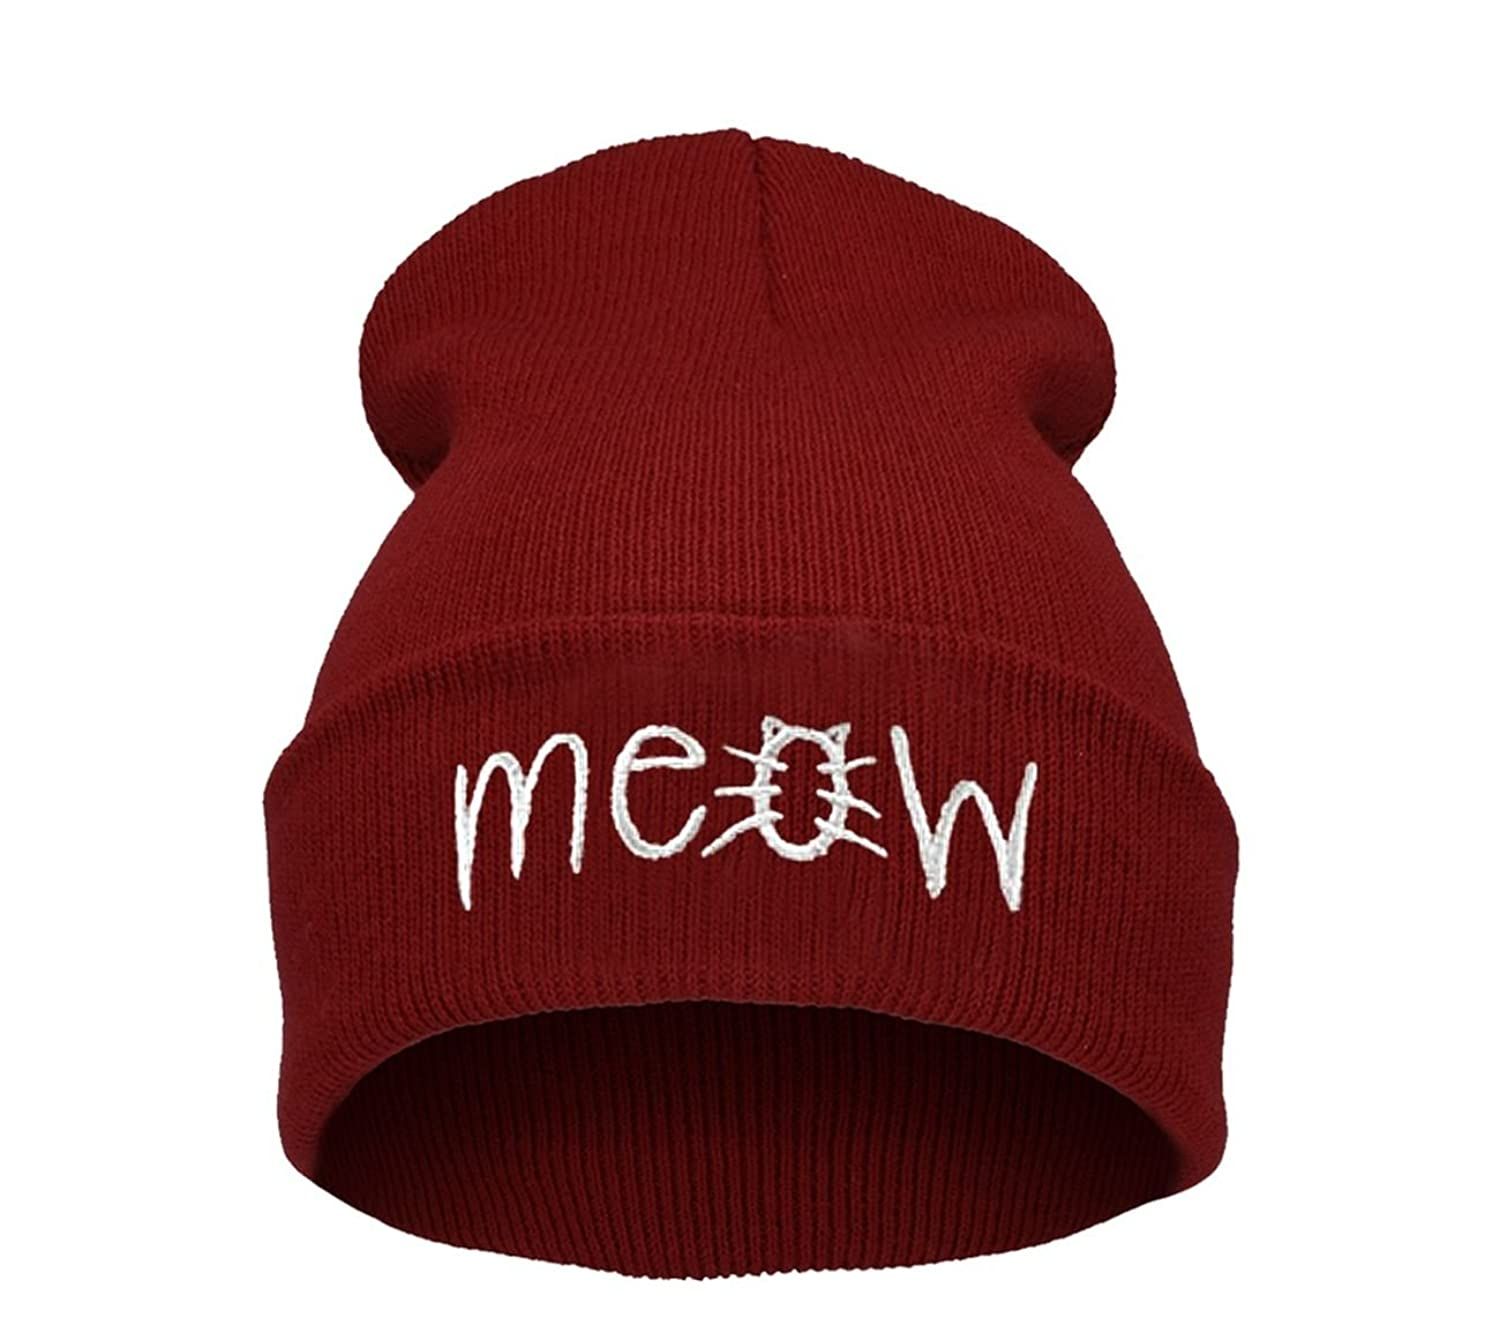 Beanie Hüte Mützen Damen Herren Bad Hair Day Bastard Meow Swag Wasted Commes HAT HATS Morefazltd (TM(meow dark red)